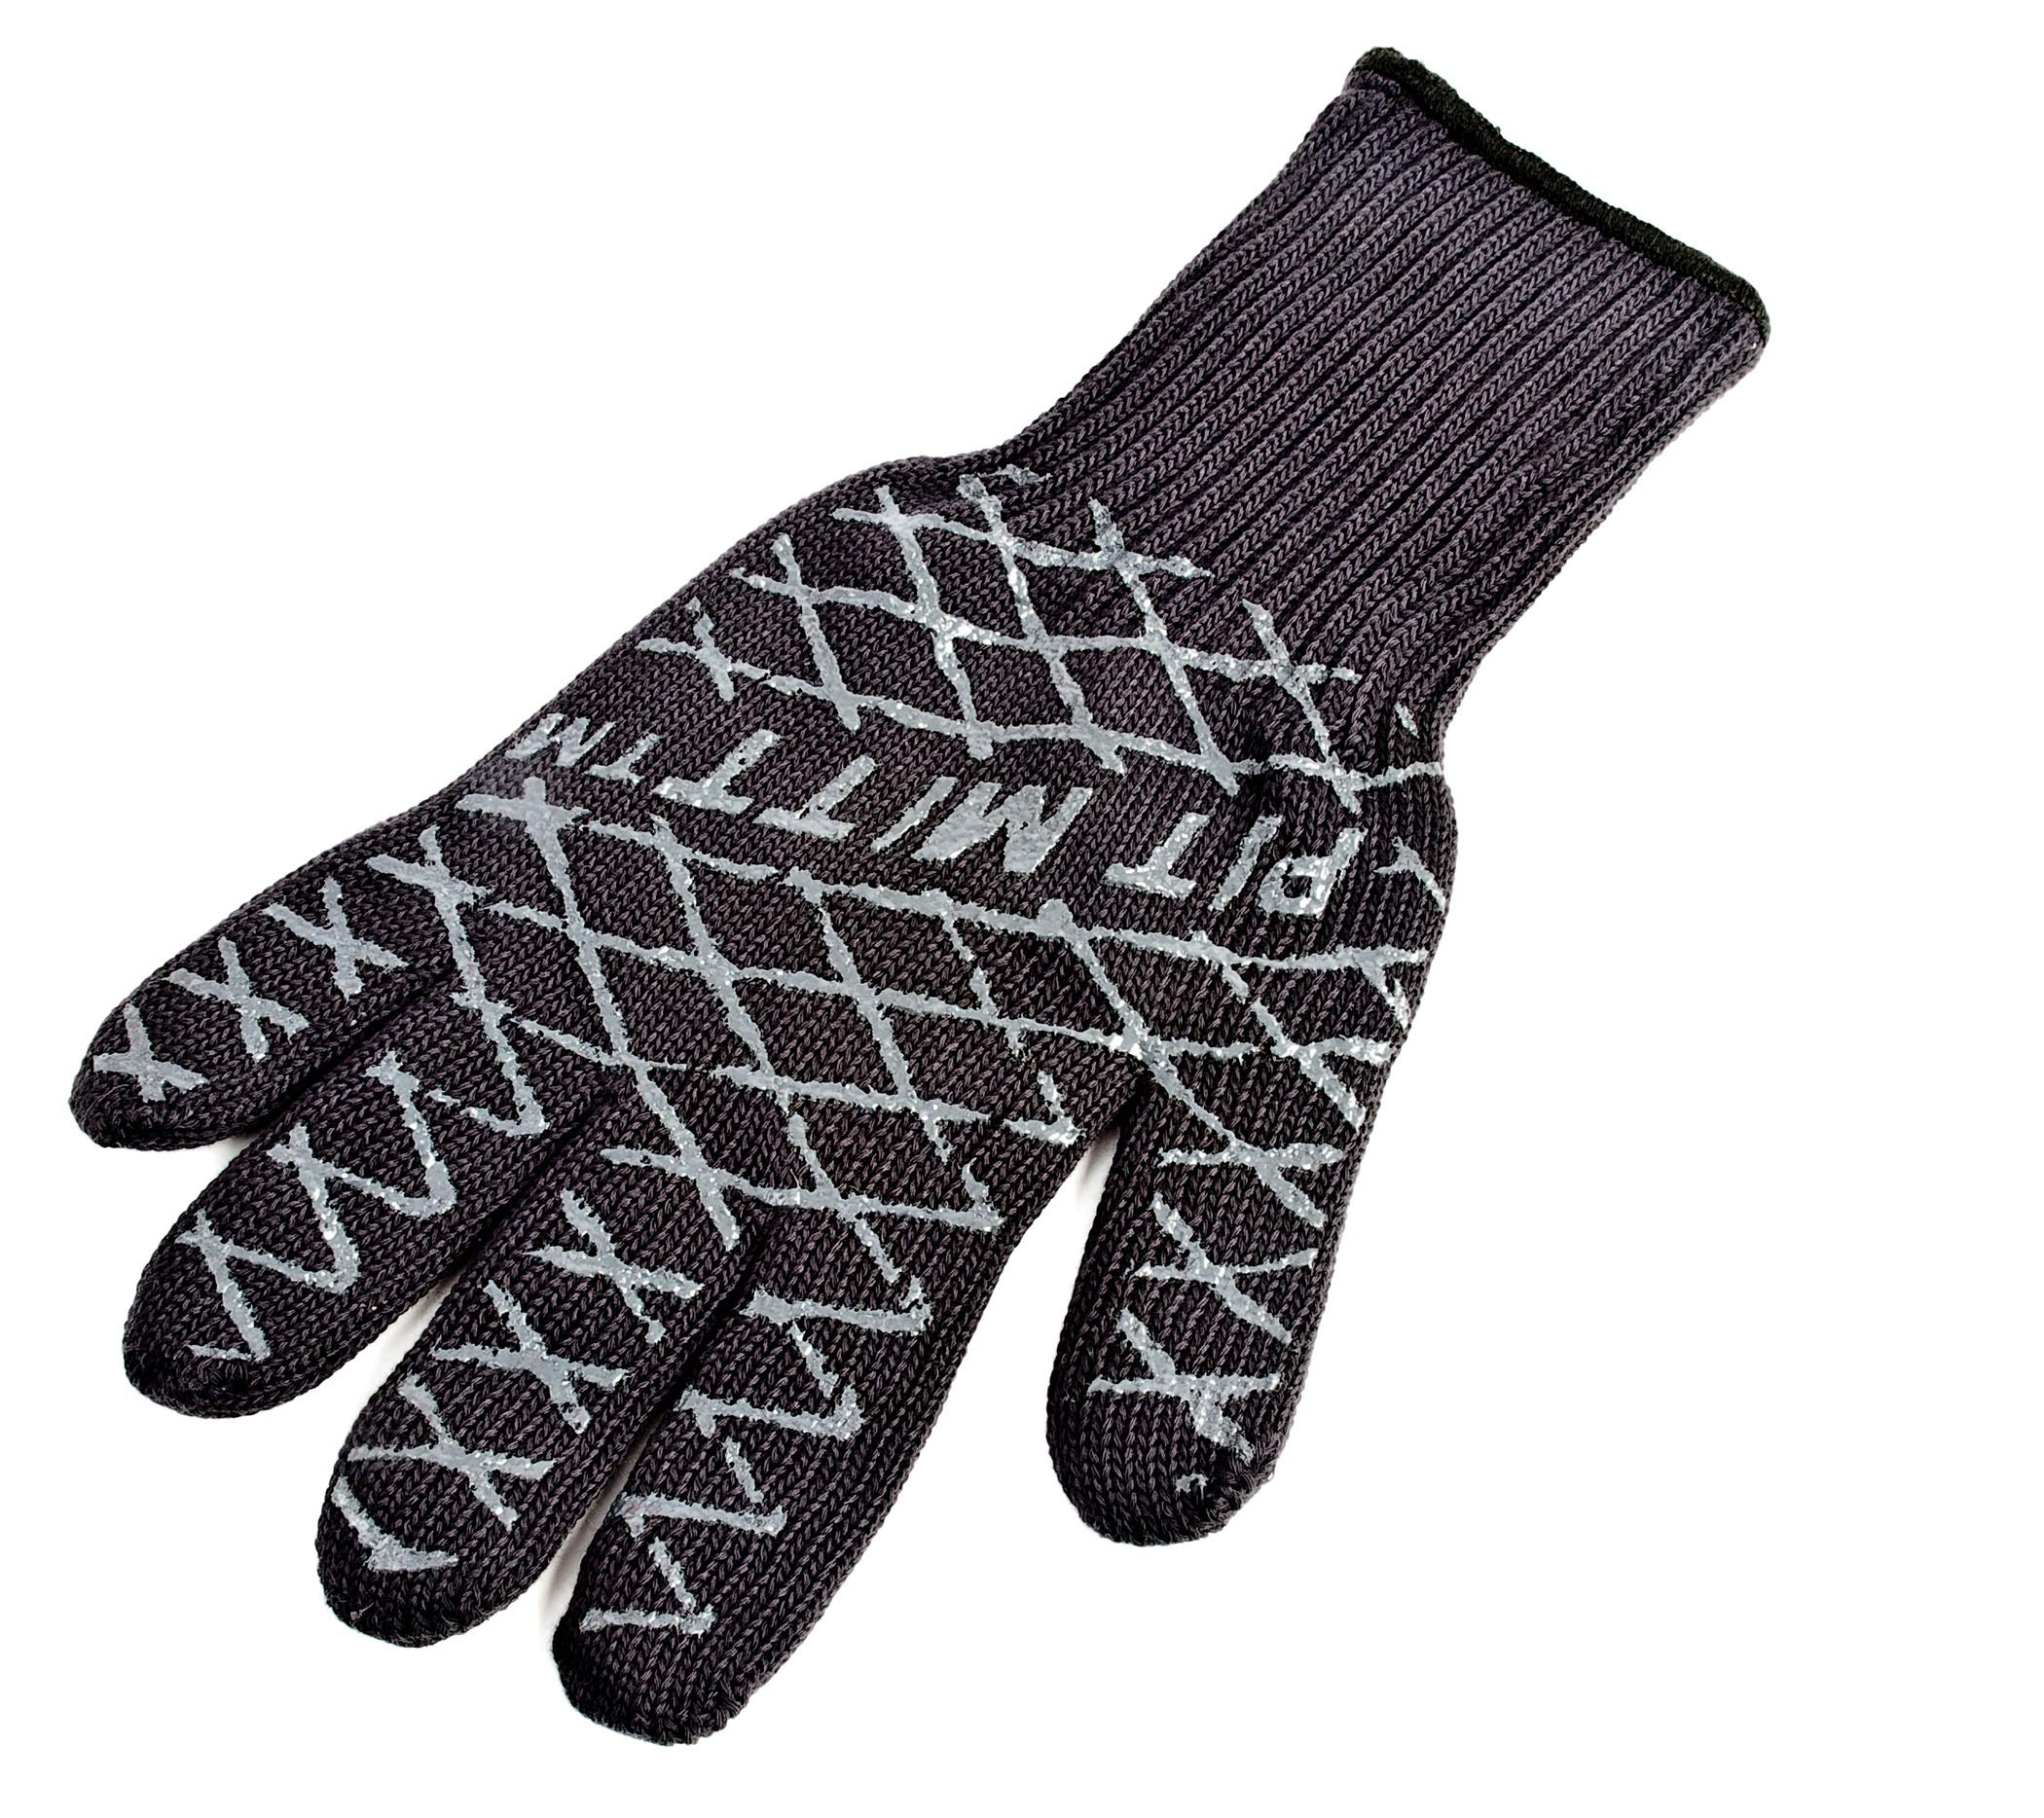 Charcoal Companion Ultimate Barbecue Pit Mitt Glove - For Grill or Oven - Measures 13'' Long - CC5102.